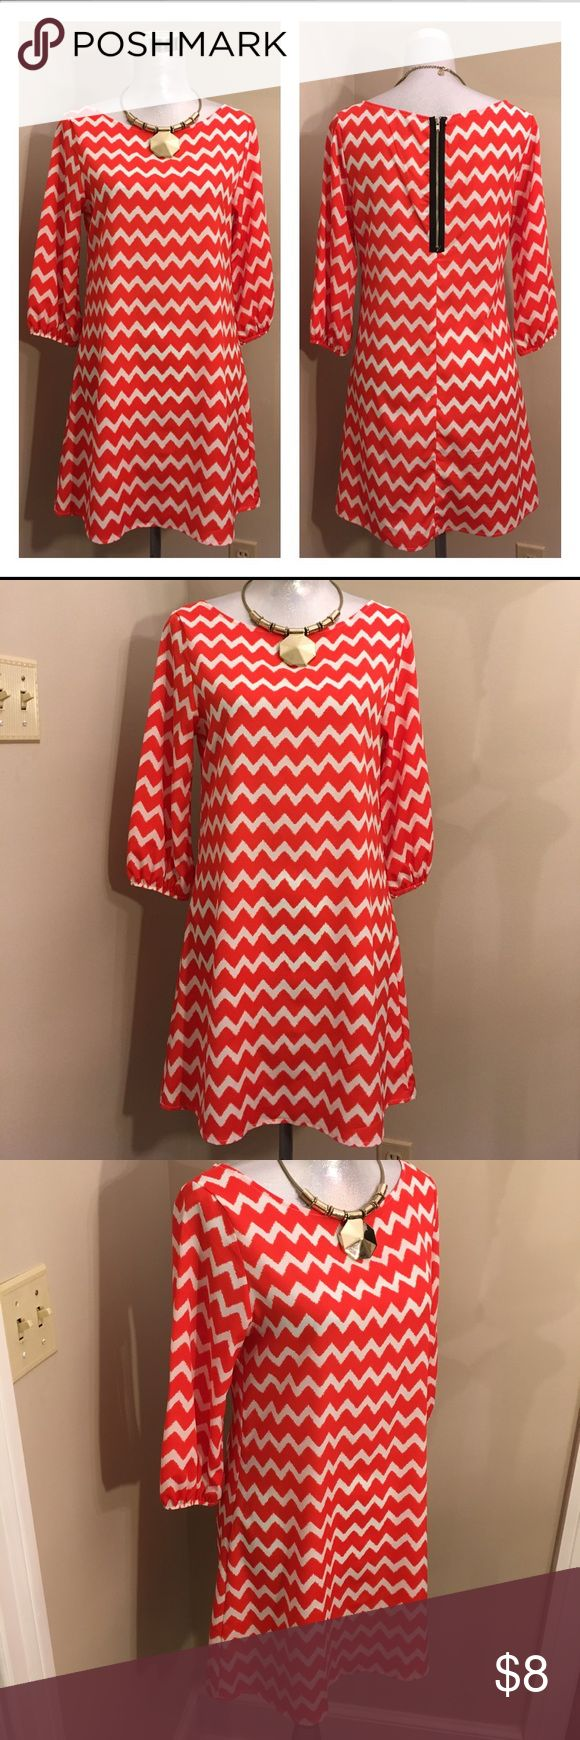 """Auditions Fashion Orange Chevron Dress Size 6 Worn once. No condition issues. 100% Polyester. Marked size small. Shown on my size 6 mannequin. Please compare measurements with something in your closet. You might need to wear something under this. It's a thin dress. Sleeve length 17.5"""" 3/4 length sleeves. From back of neck to hem 31"""" inches. Underarm to underarm 19"""" inches. Waist 36"""" inches. This is a very dark orange. Almost red. Necklace sold separately. Auditions Dresses Mini"""